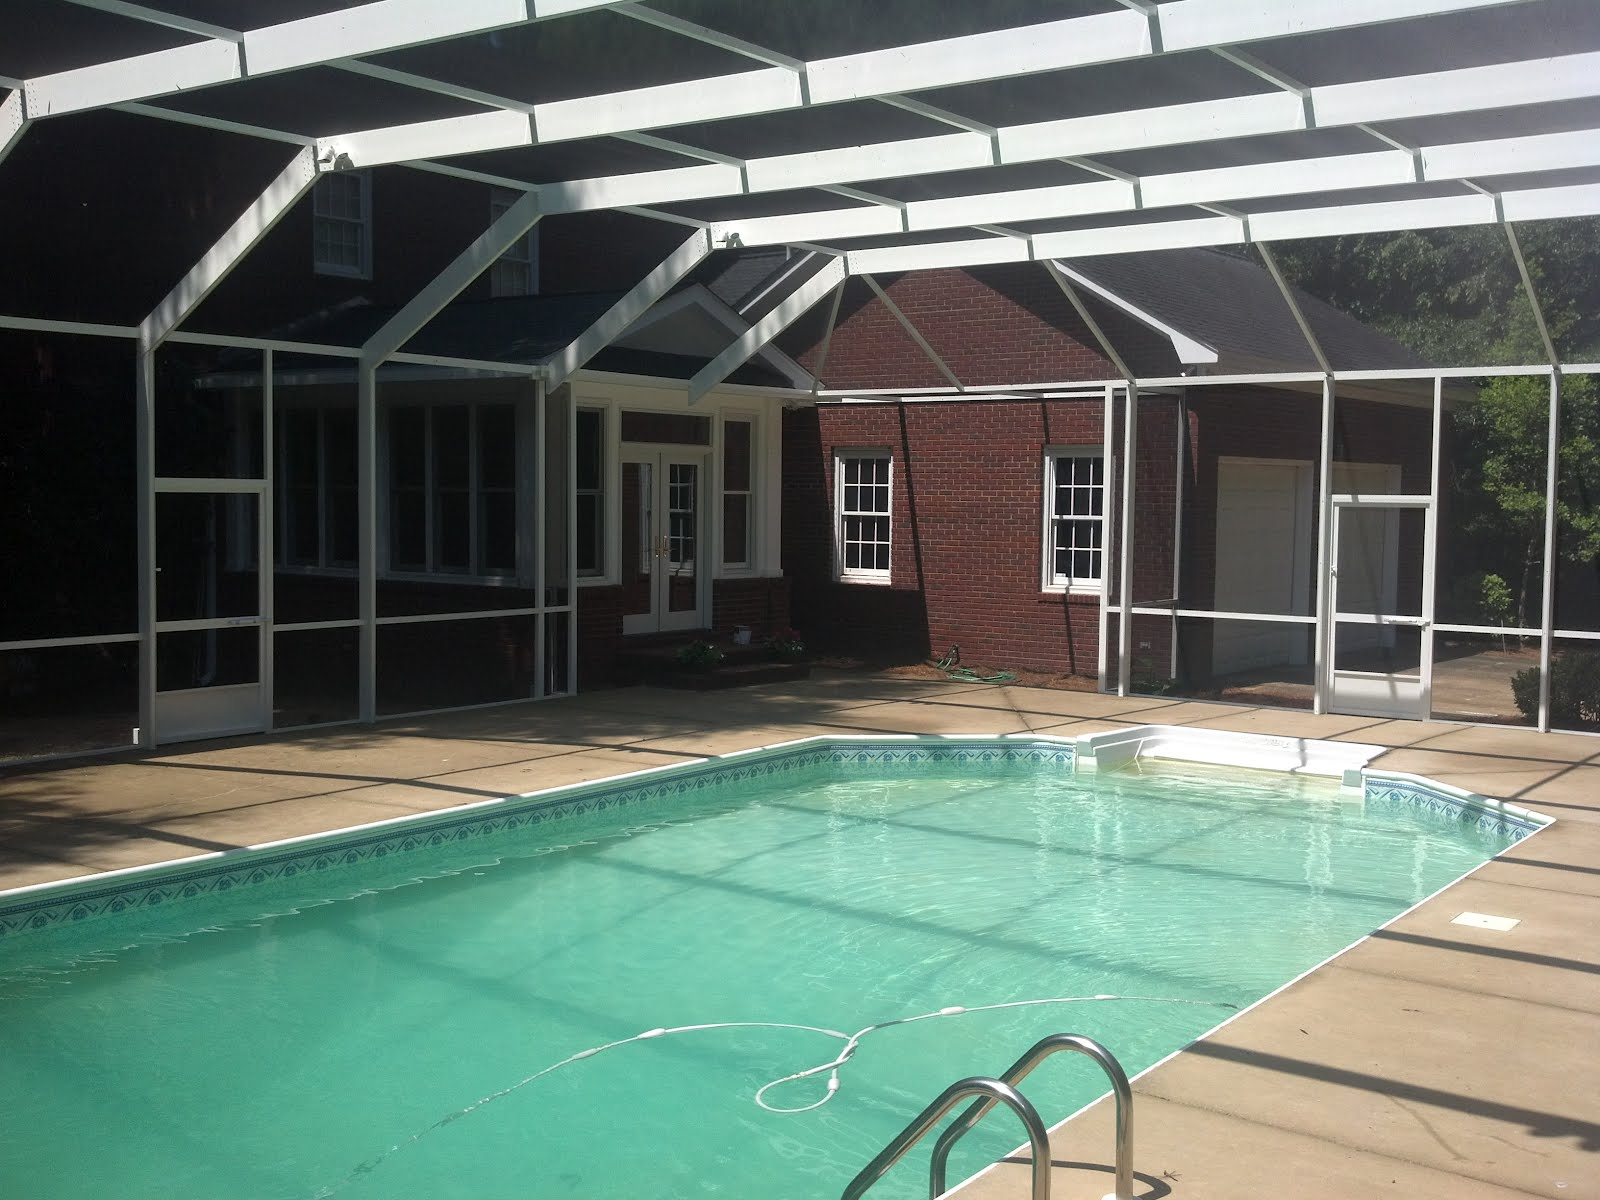 Pool enclosures usa georgia pool enclosure - Swimming pool screen enclosures cost ...